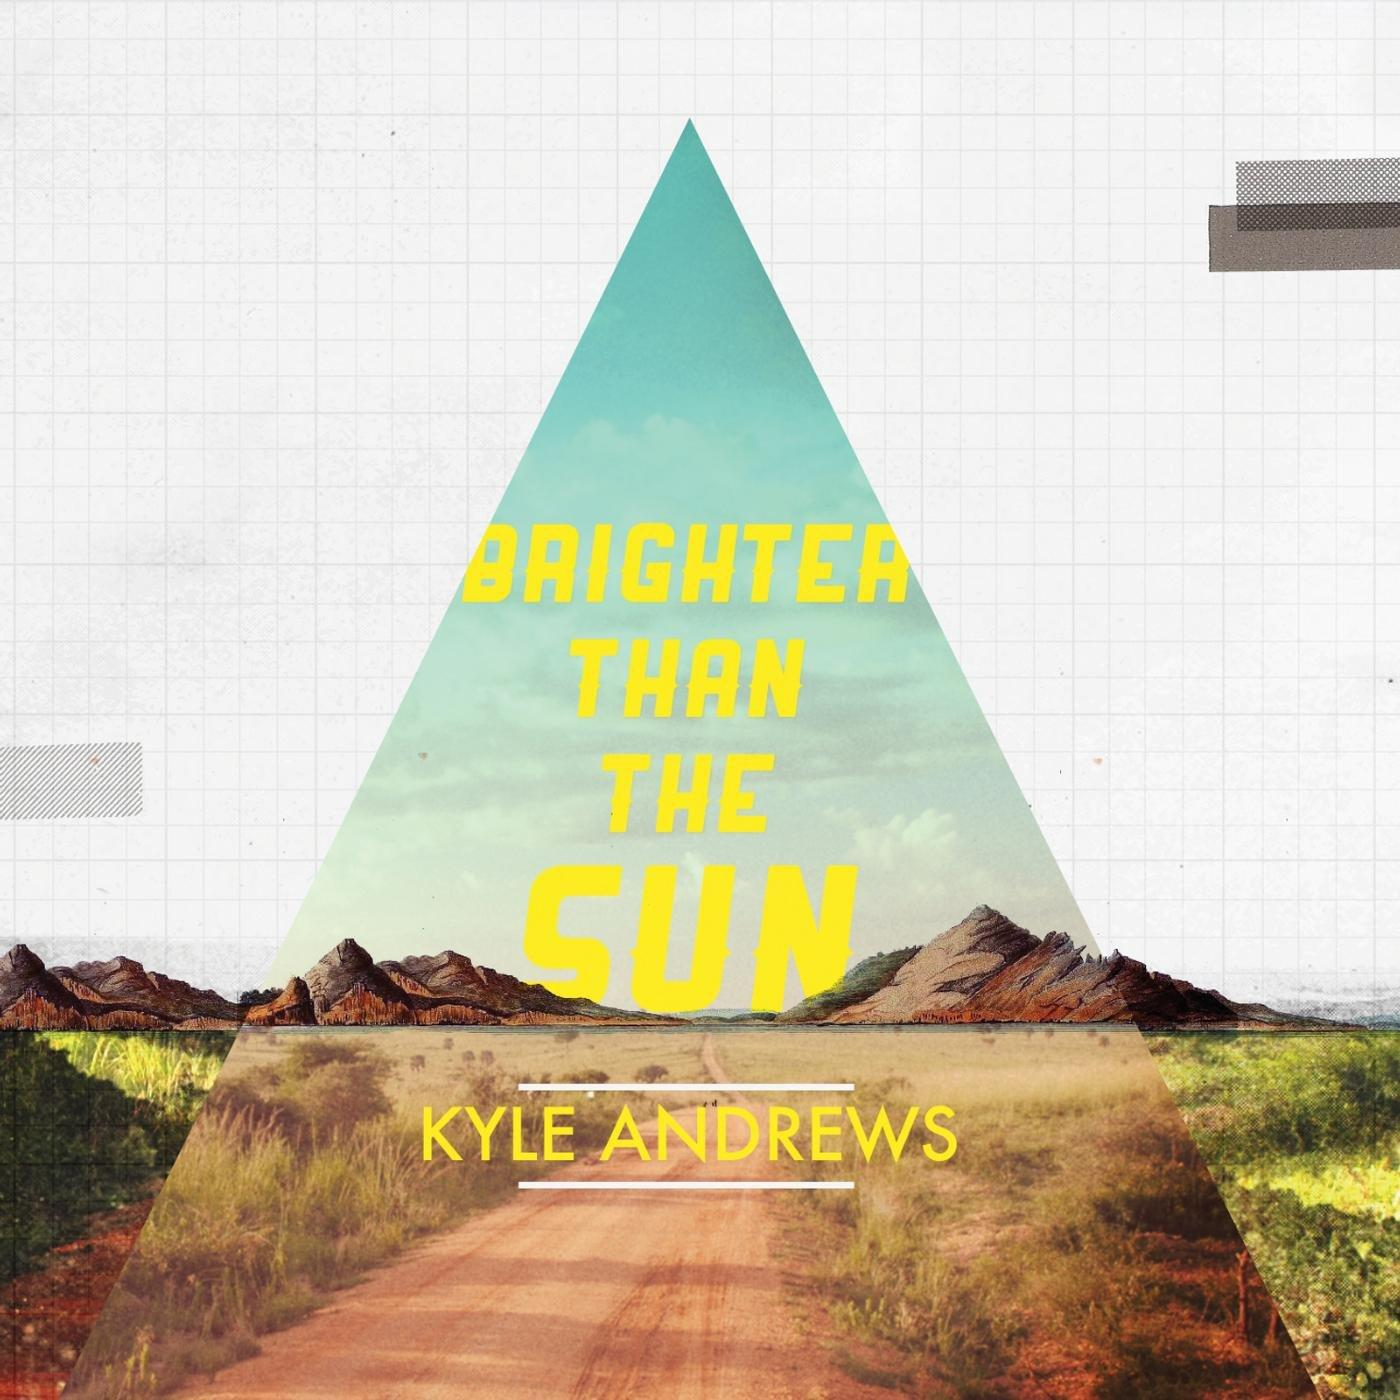 Kyle Andrews - Brighter Than The Sun (2013) [MULTI]